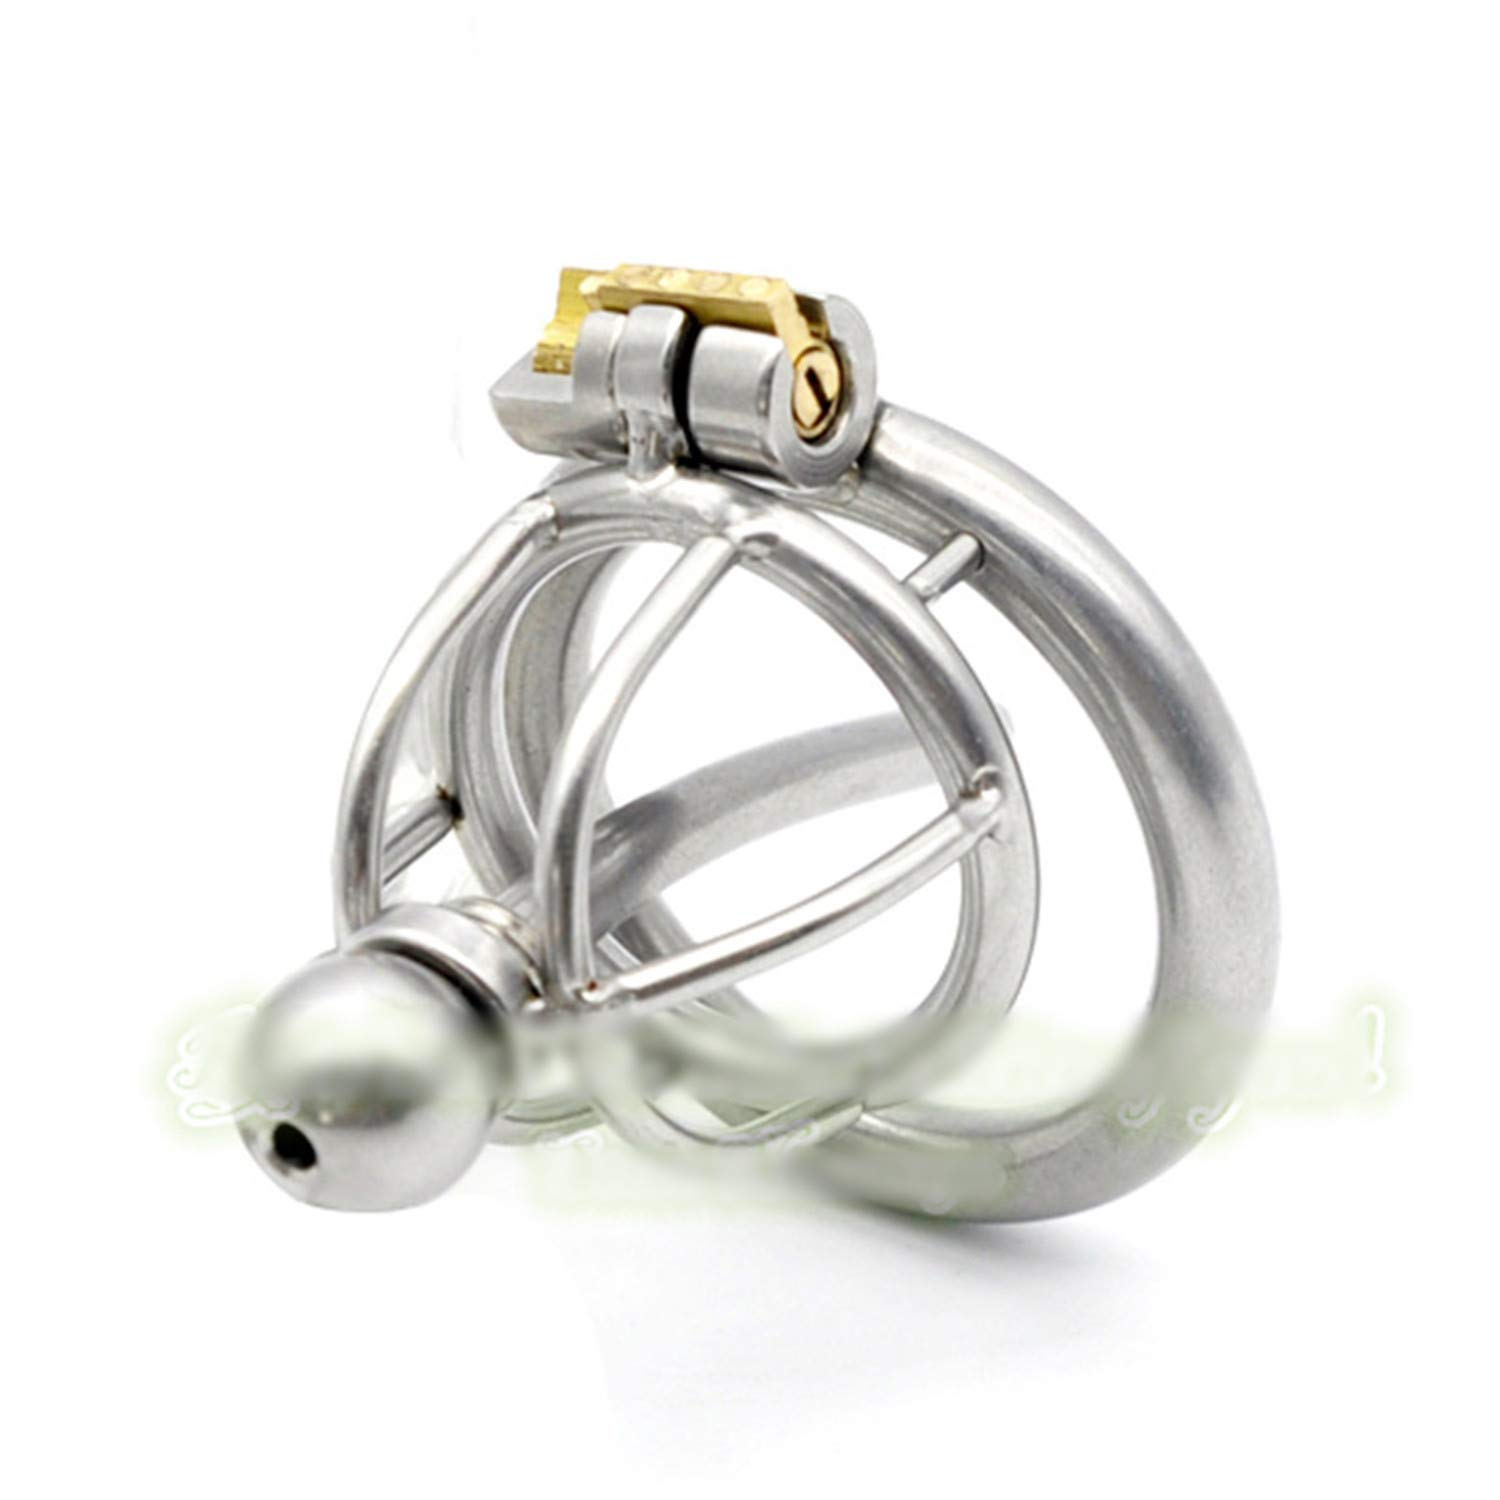 SCGOLD 33Mm New Lock Stainless Steel Include Catheter Male Chastity Belt Adult Cock Cage Sex Toy Chastity Device 50mm